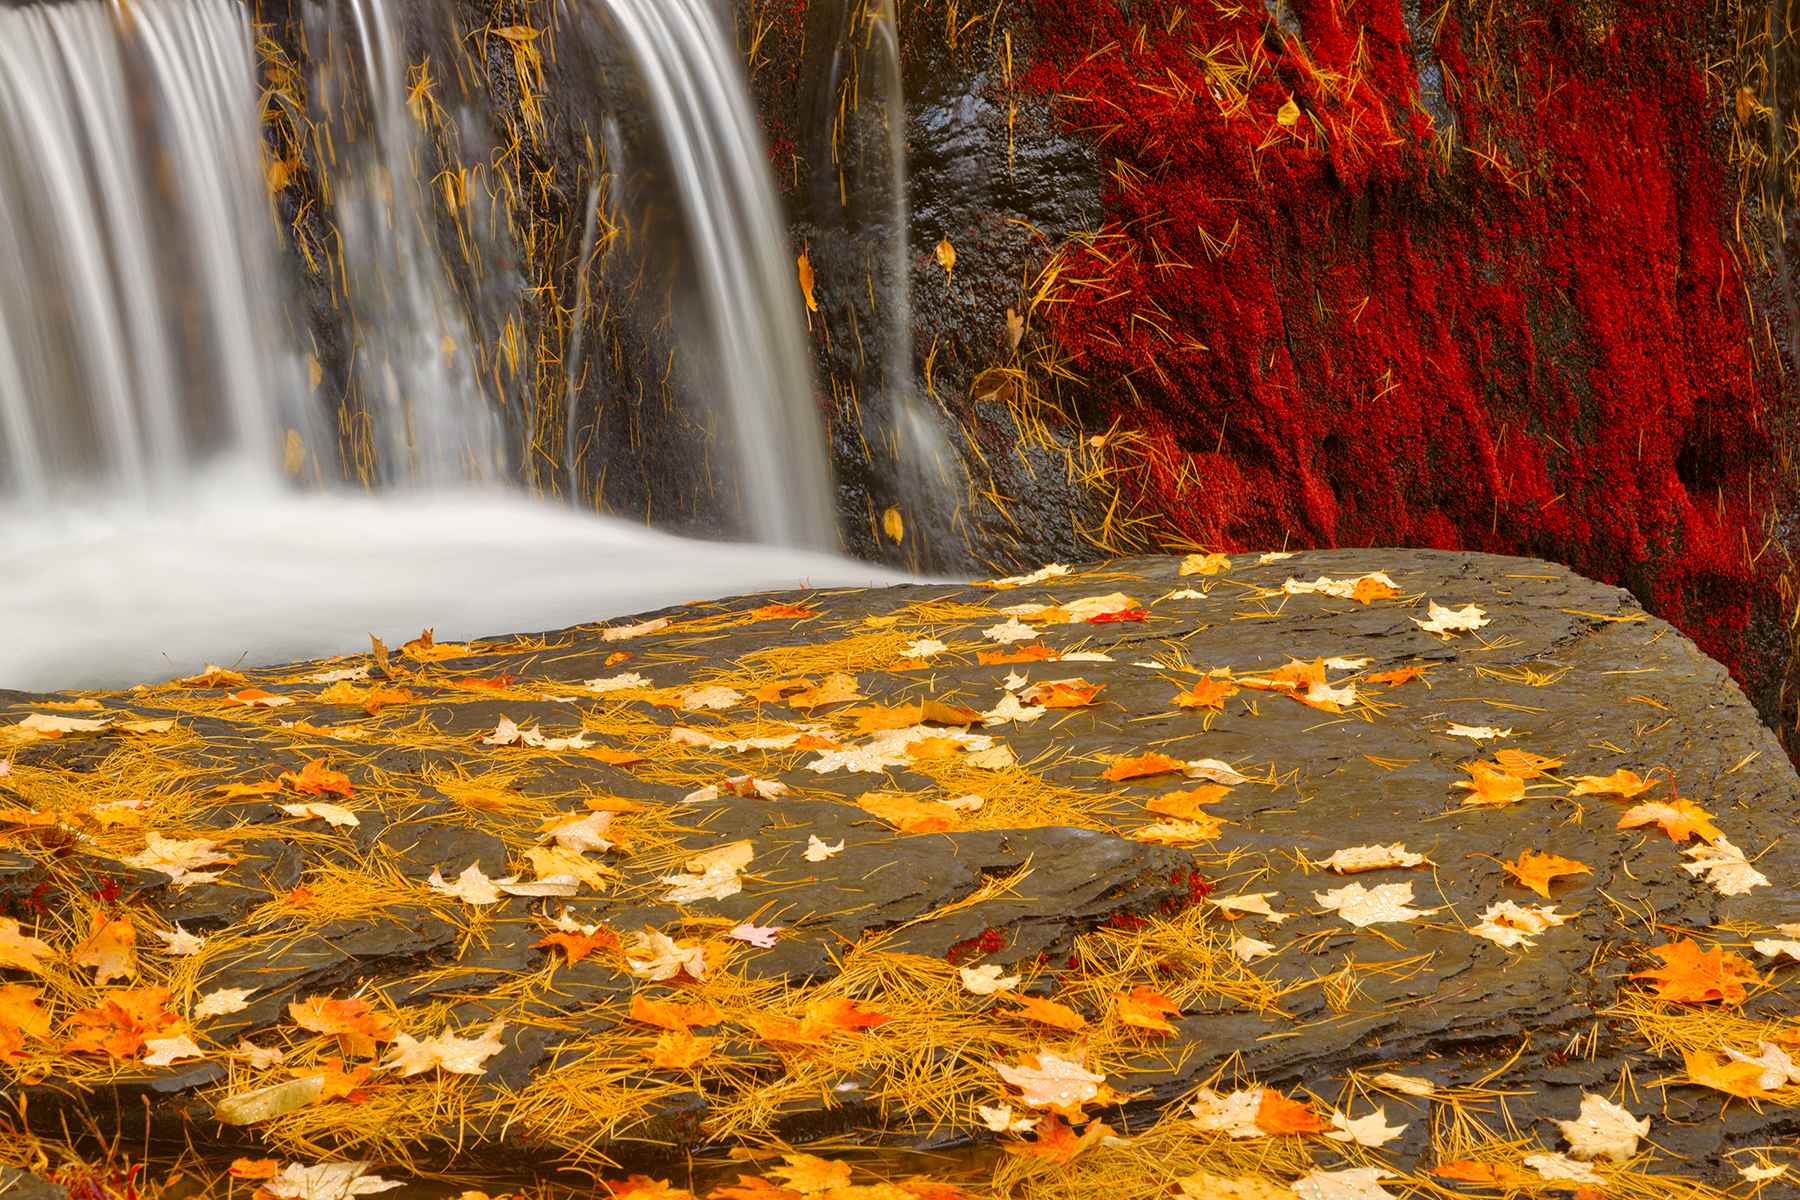 Autumn moss factory falls - gold ruby fantasy hdr photo